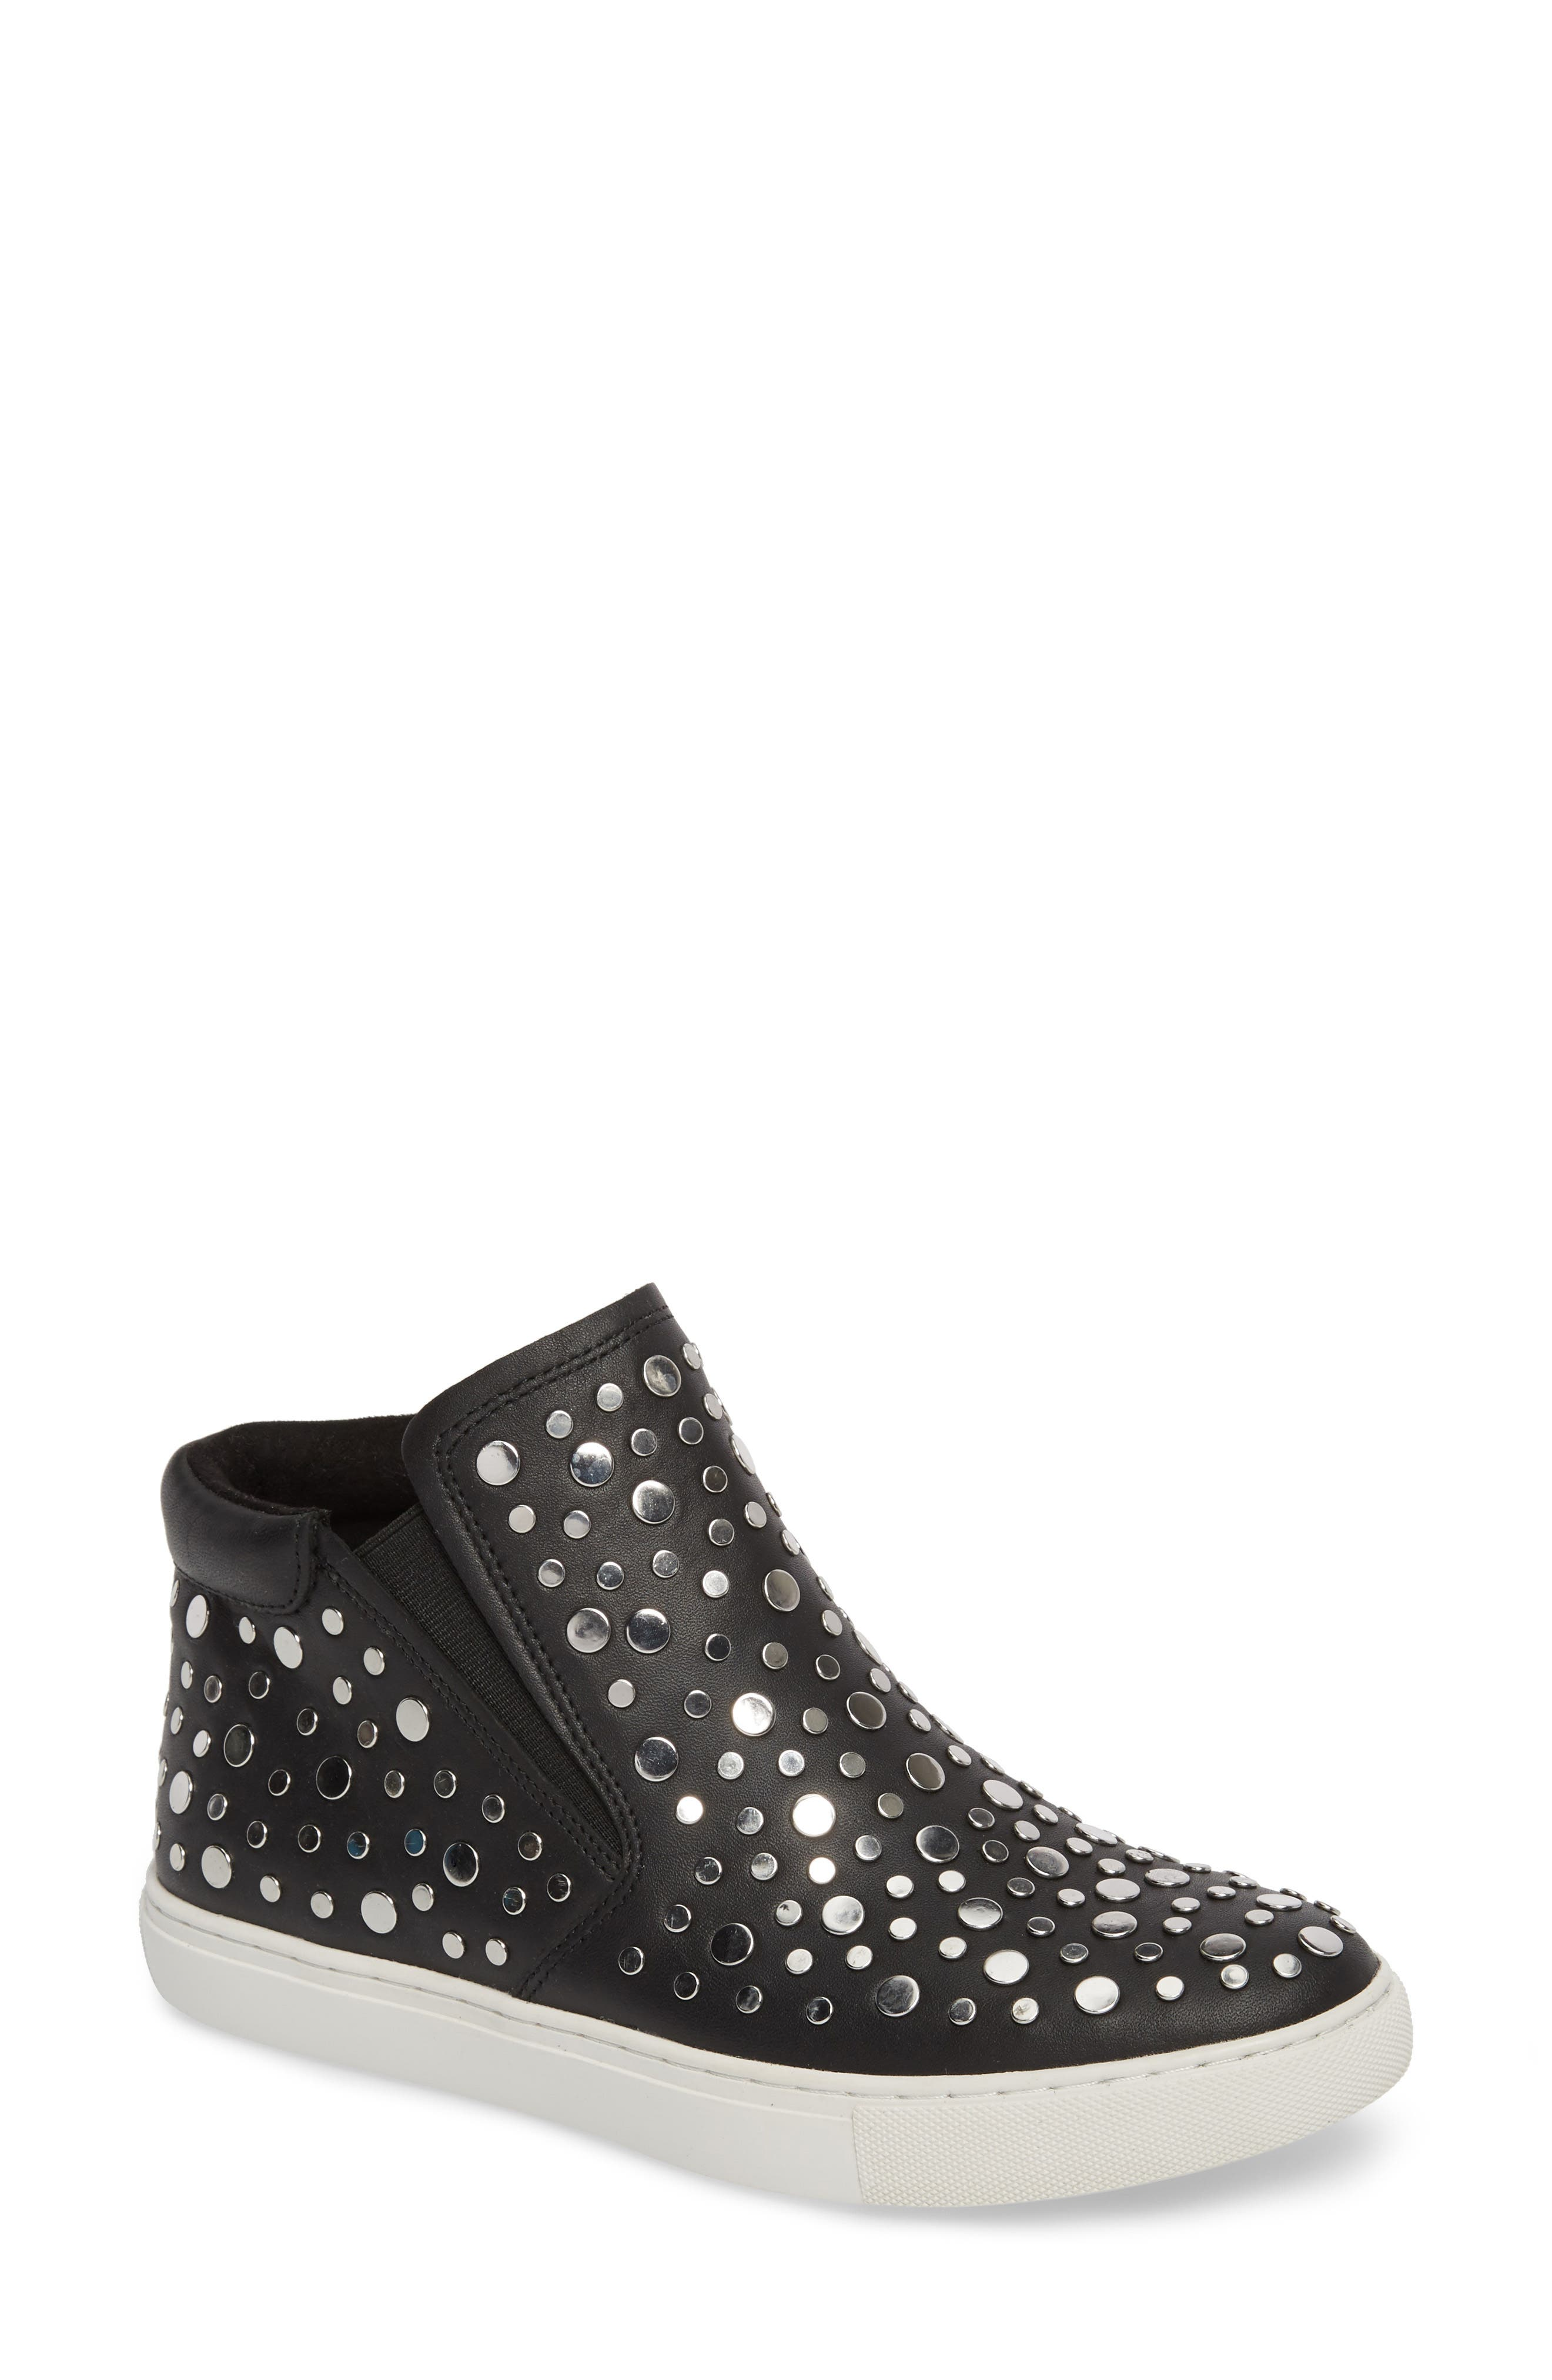 Kalvin Studded High Top Sneaker,                             Main thumbnail 1, color,                             Black Leather